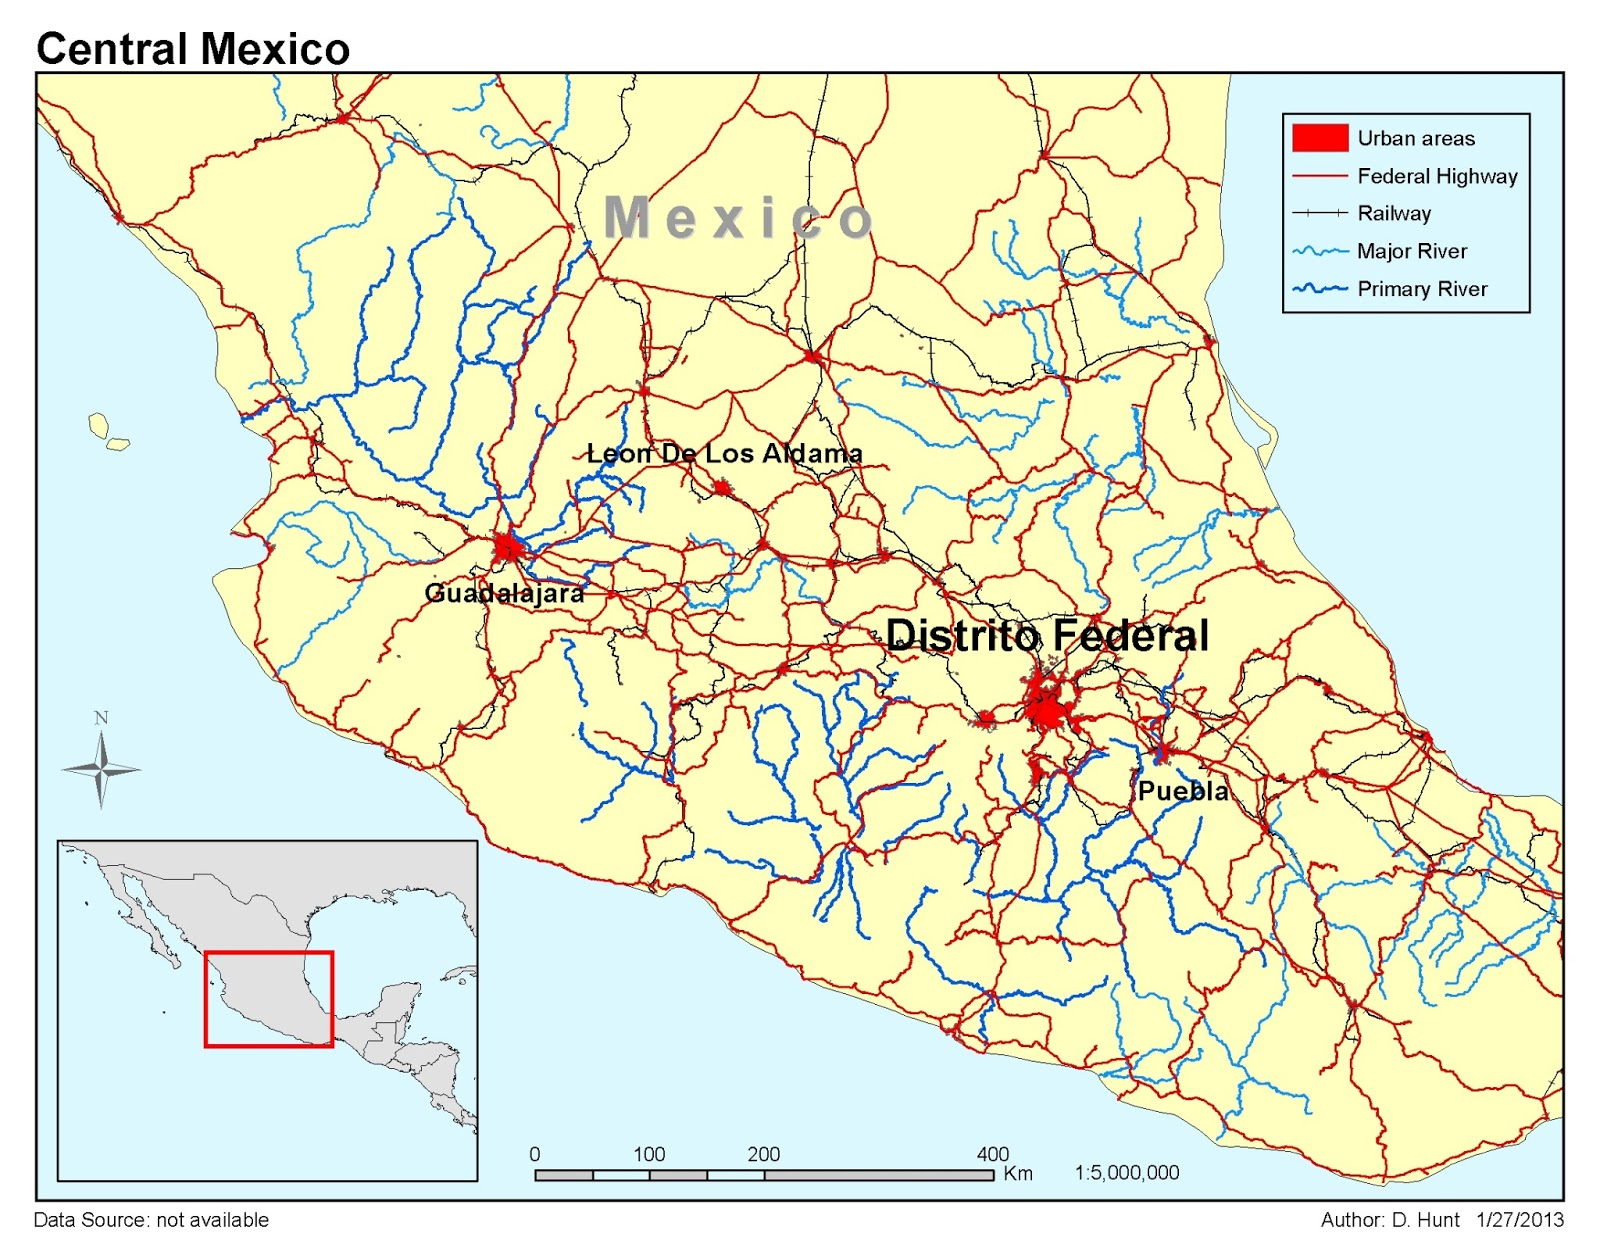 this map of central mexico allowed us to play with presenting a number of elements on the map i m pretty happy with the overall color scheme even though